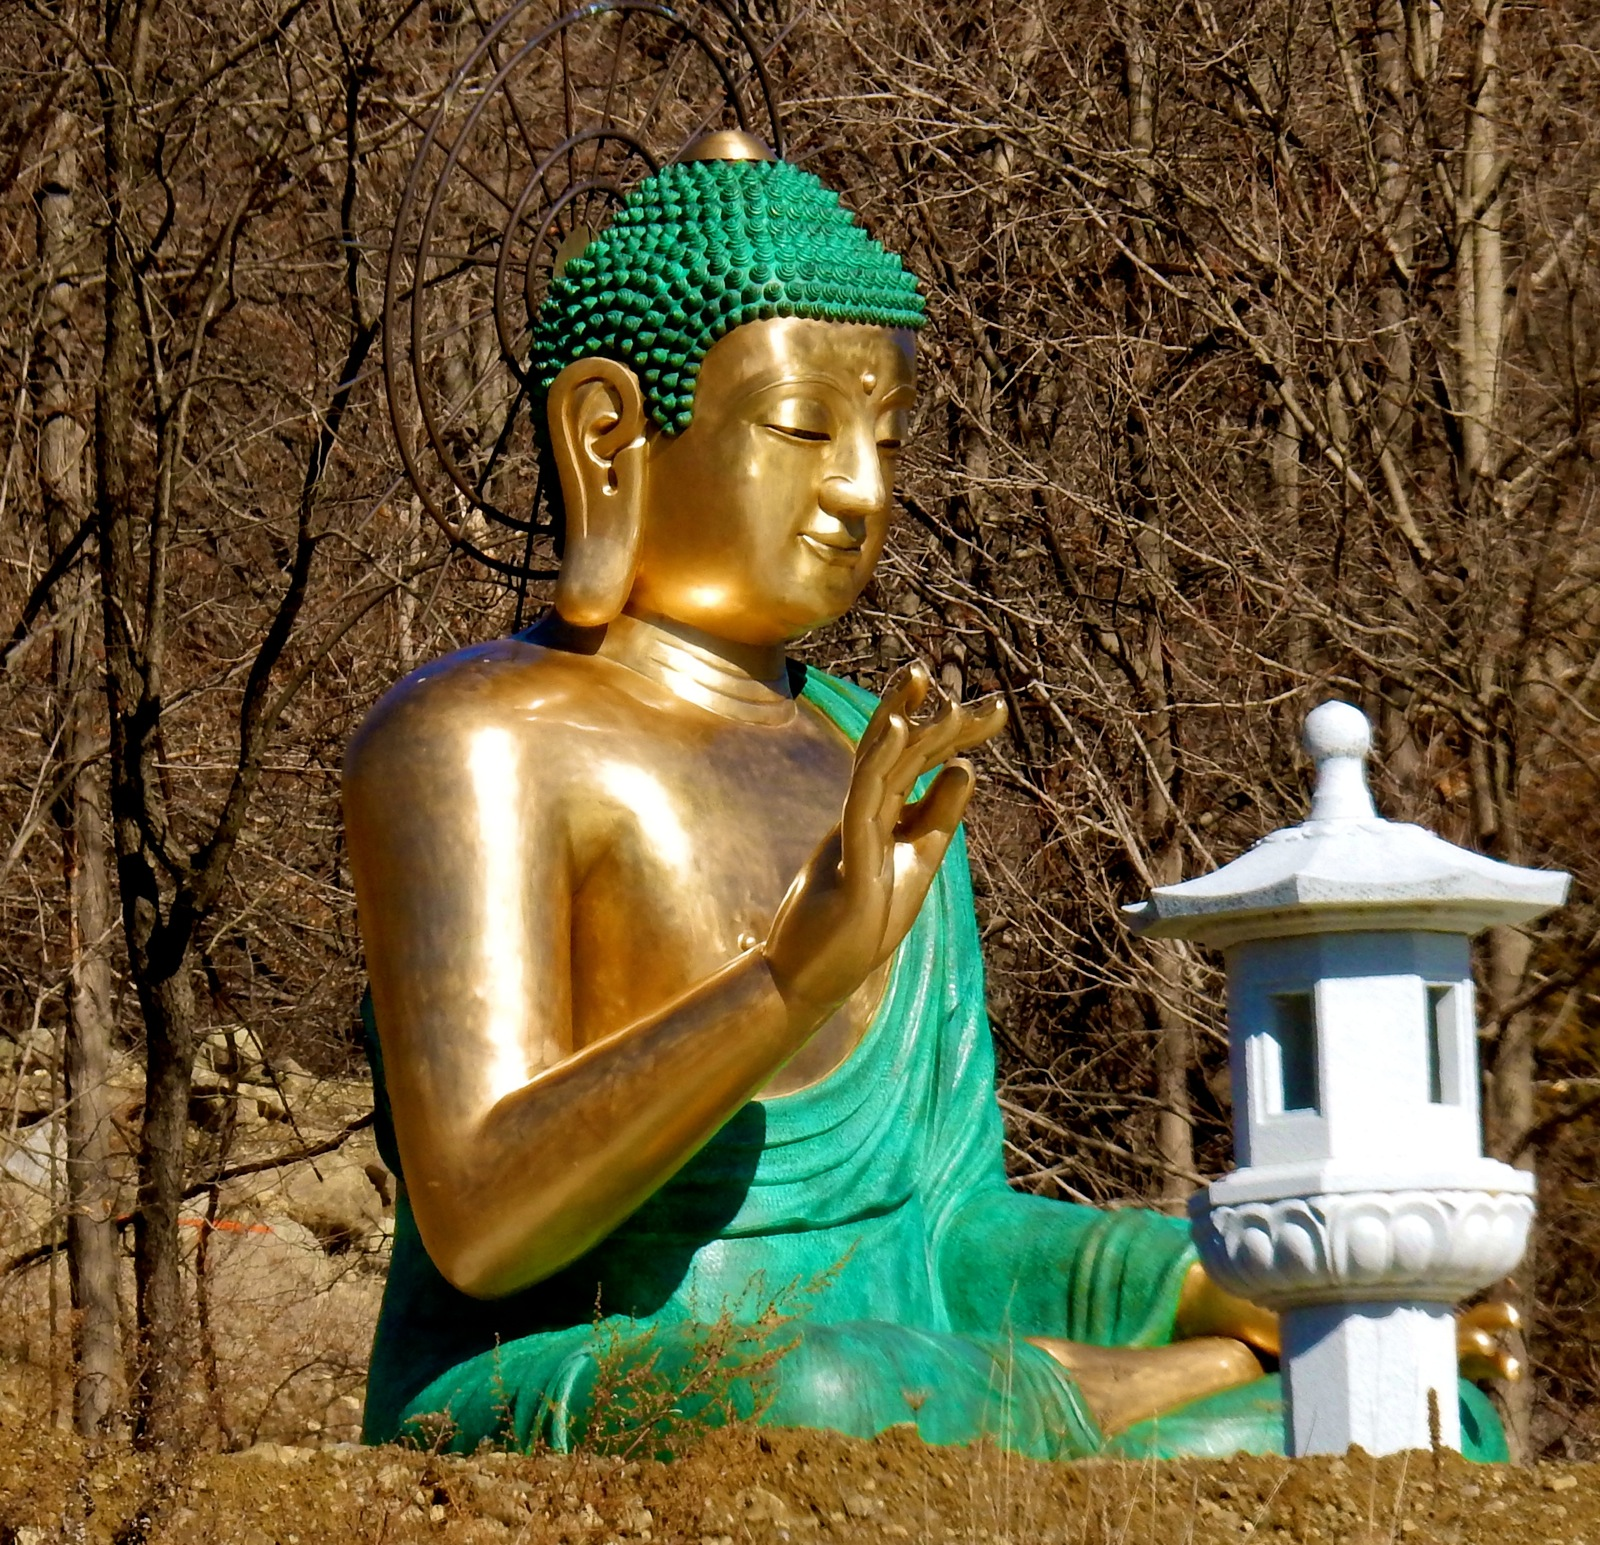 salisbury mills buddhist dating site Buddhist temple in salisbury on ypcom see reviews, photos, directions, phone numbers and more for the best buddhist places of worship in salisbury, ma.